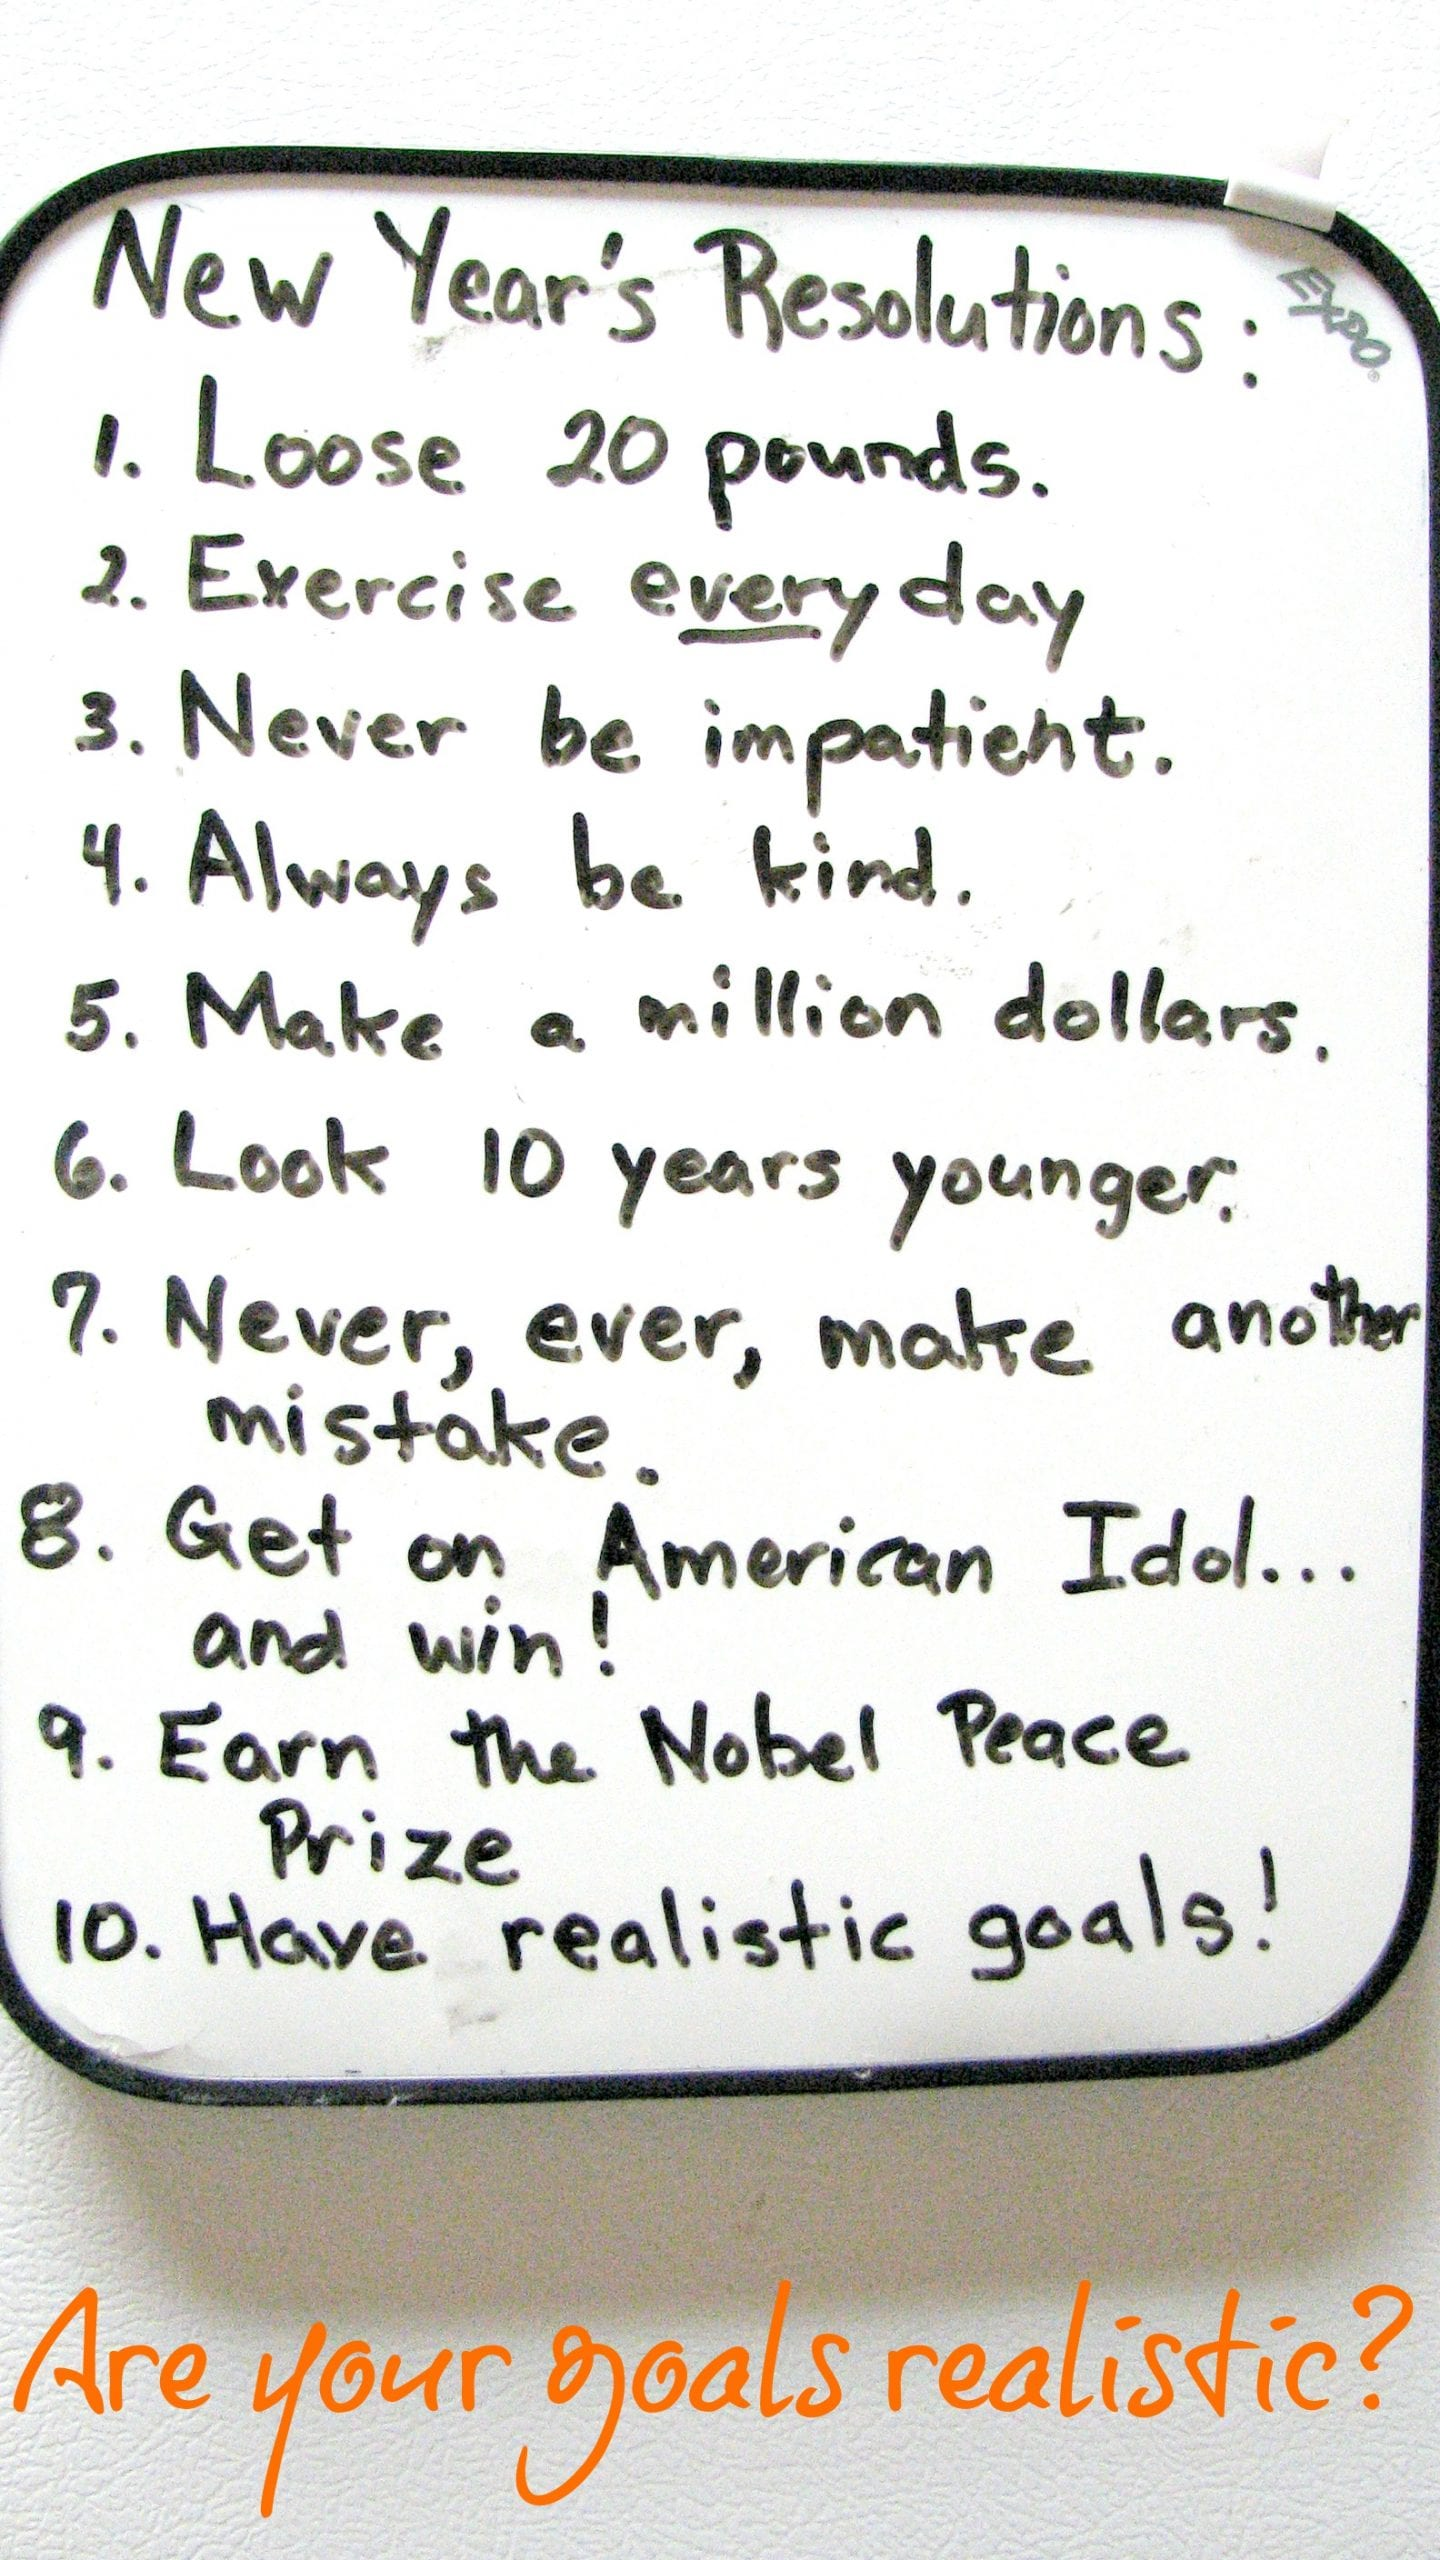 How Do You Make Goals for this Year?